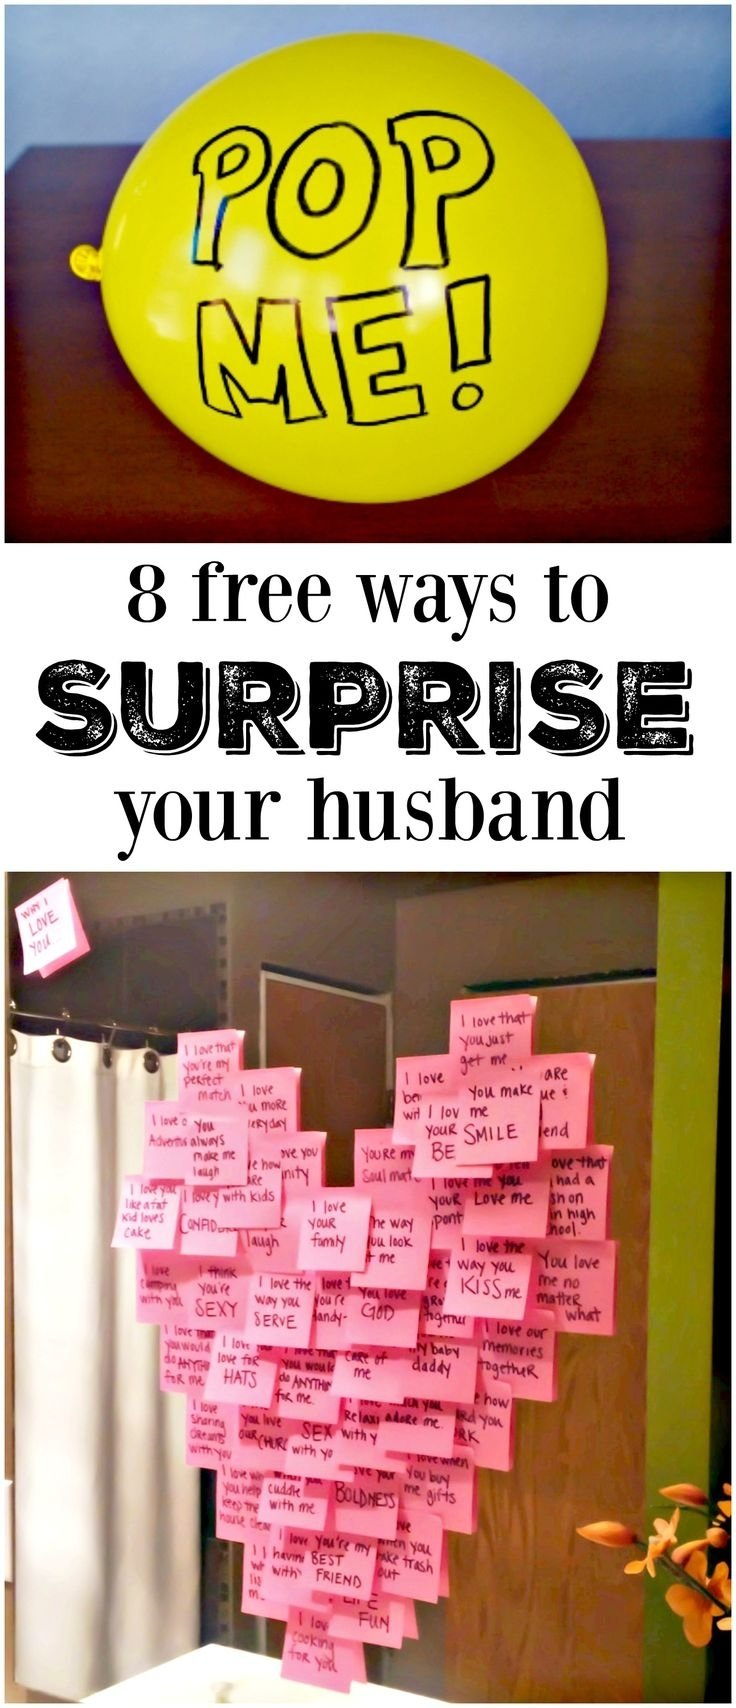 10 Trendy Cute Valentines Day Ideas For Husband 52 best valentines day ideas images on pinterest valentines 4 2020